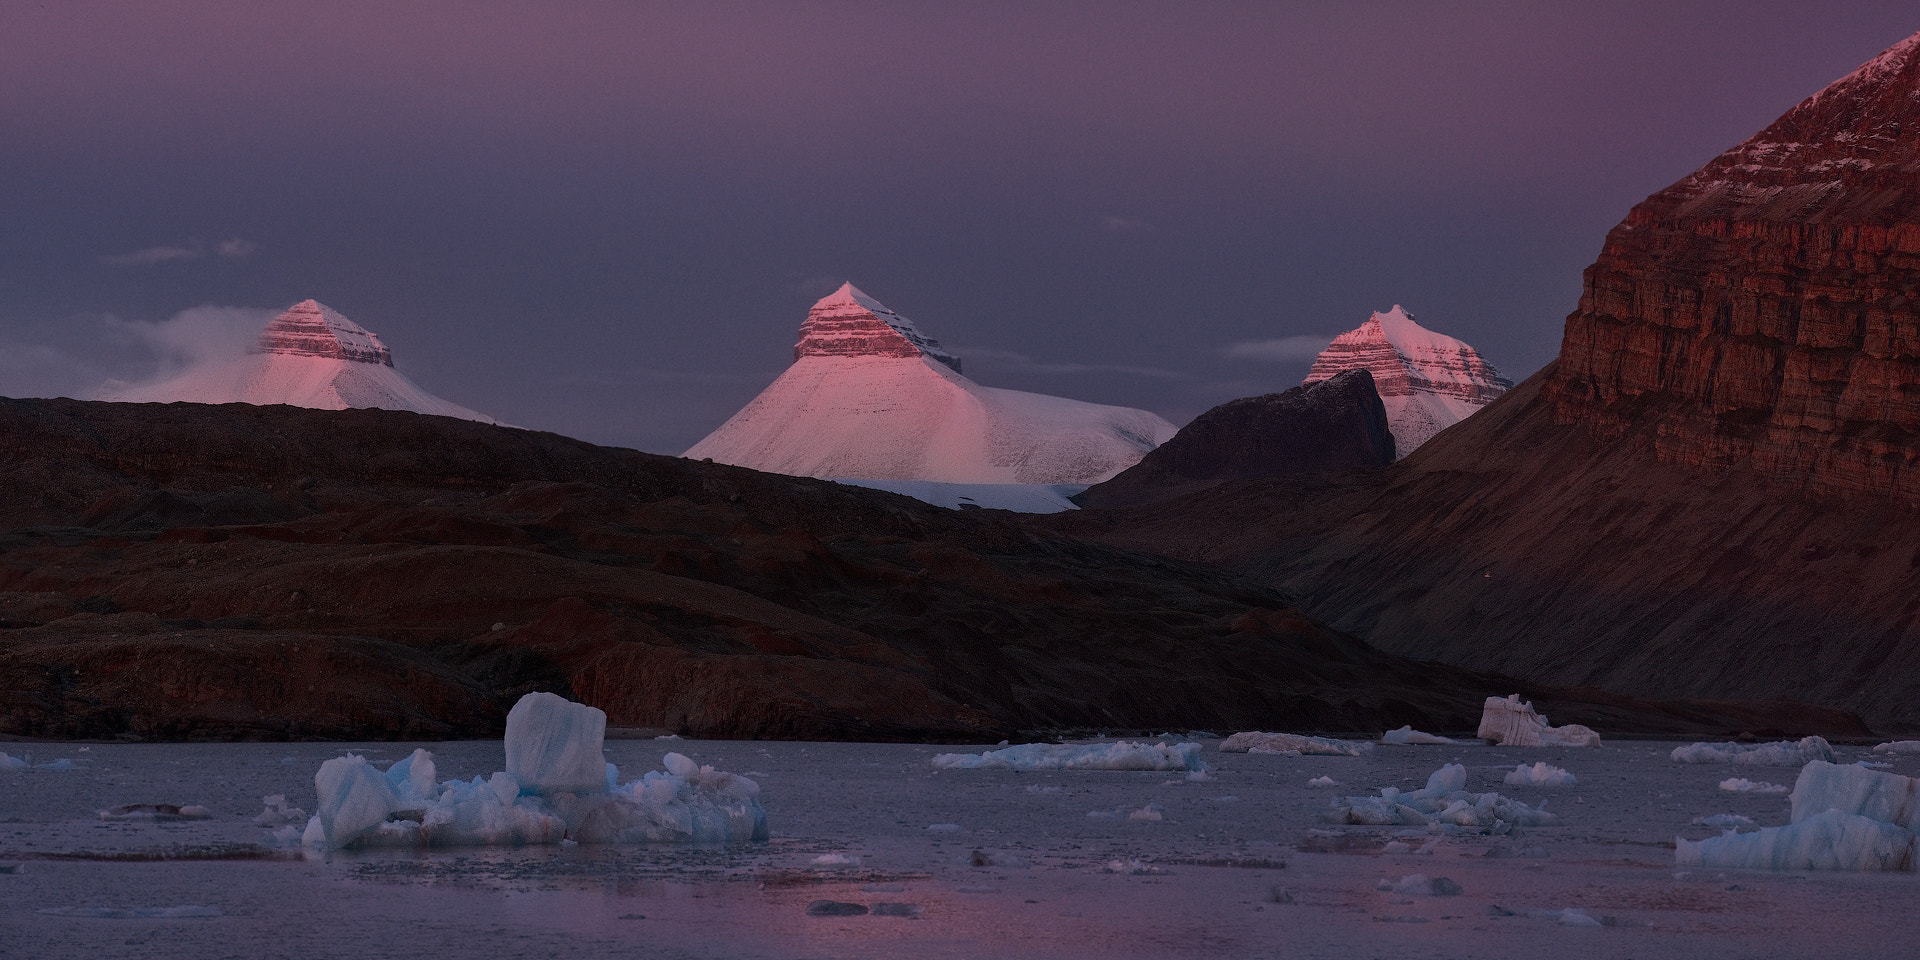 Photograph Tre Kroner by Mike Reyfman on 500px